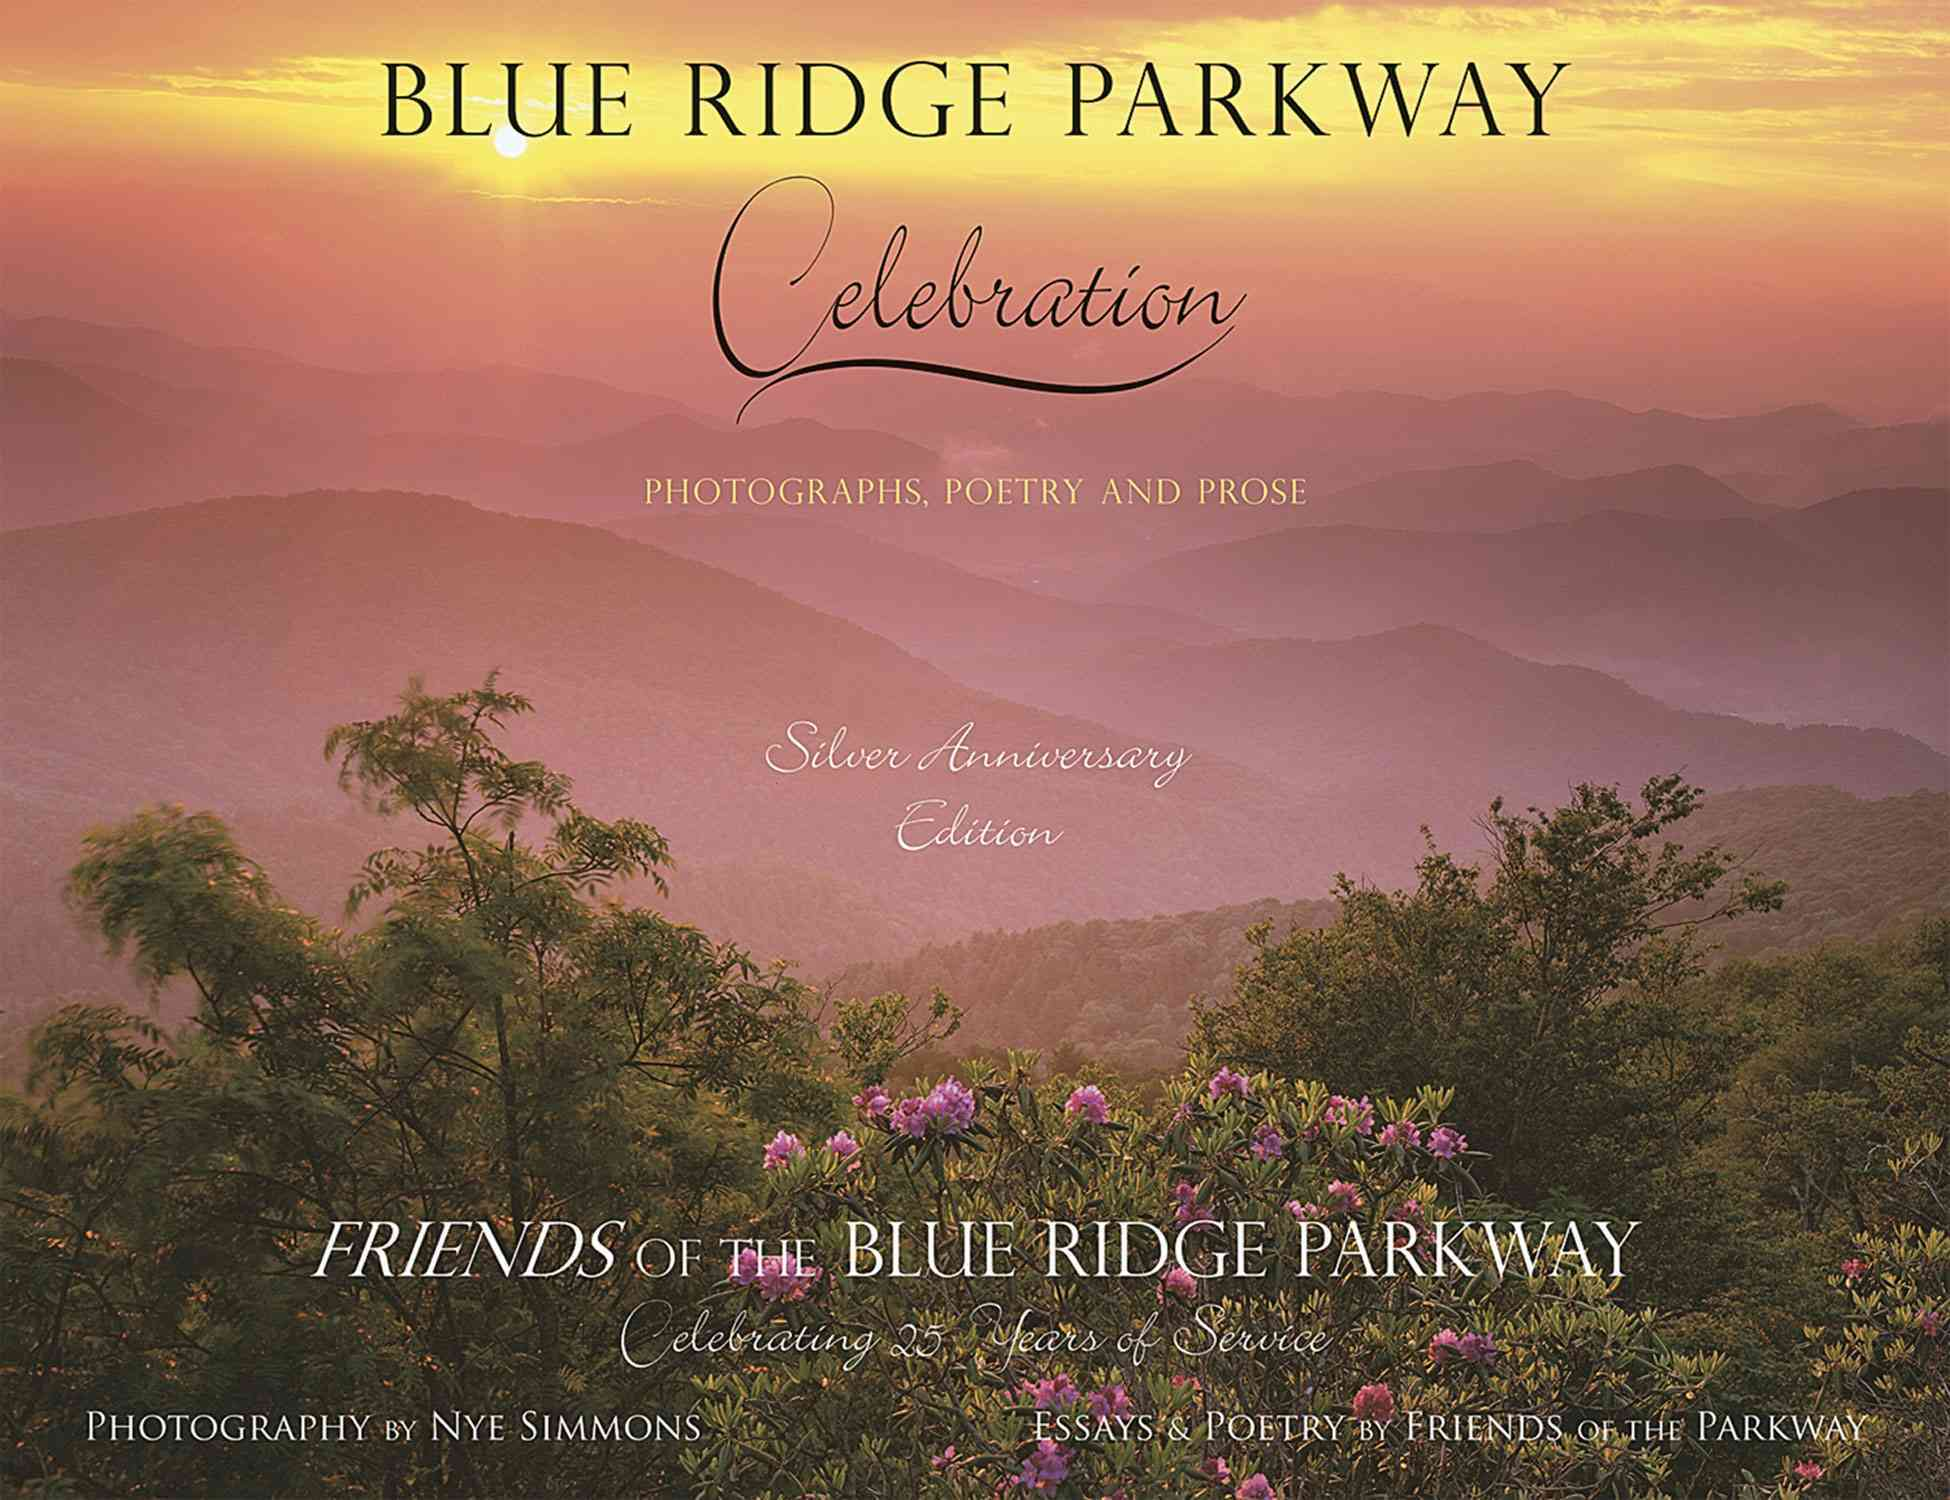 Blue Ridge Parkway - Celebration By Hunter, Elizabeth/ Maynard, Charles W/ Modisett, Cara/ Simmons, Nye (PHT)